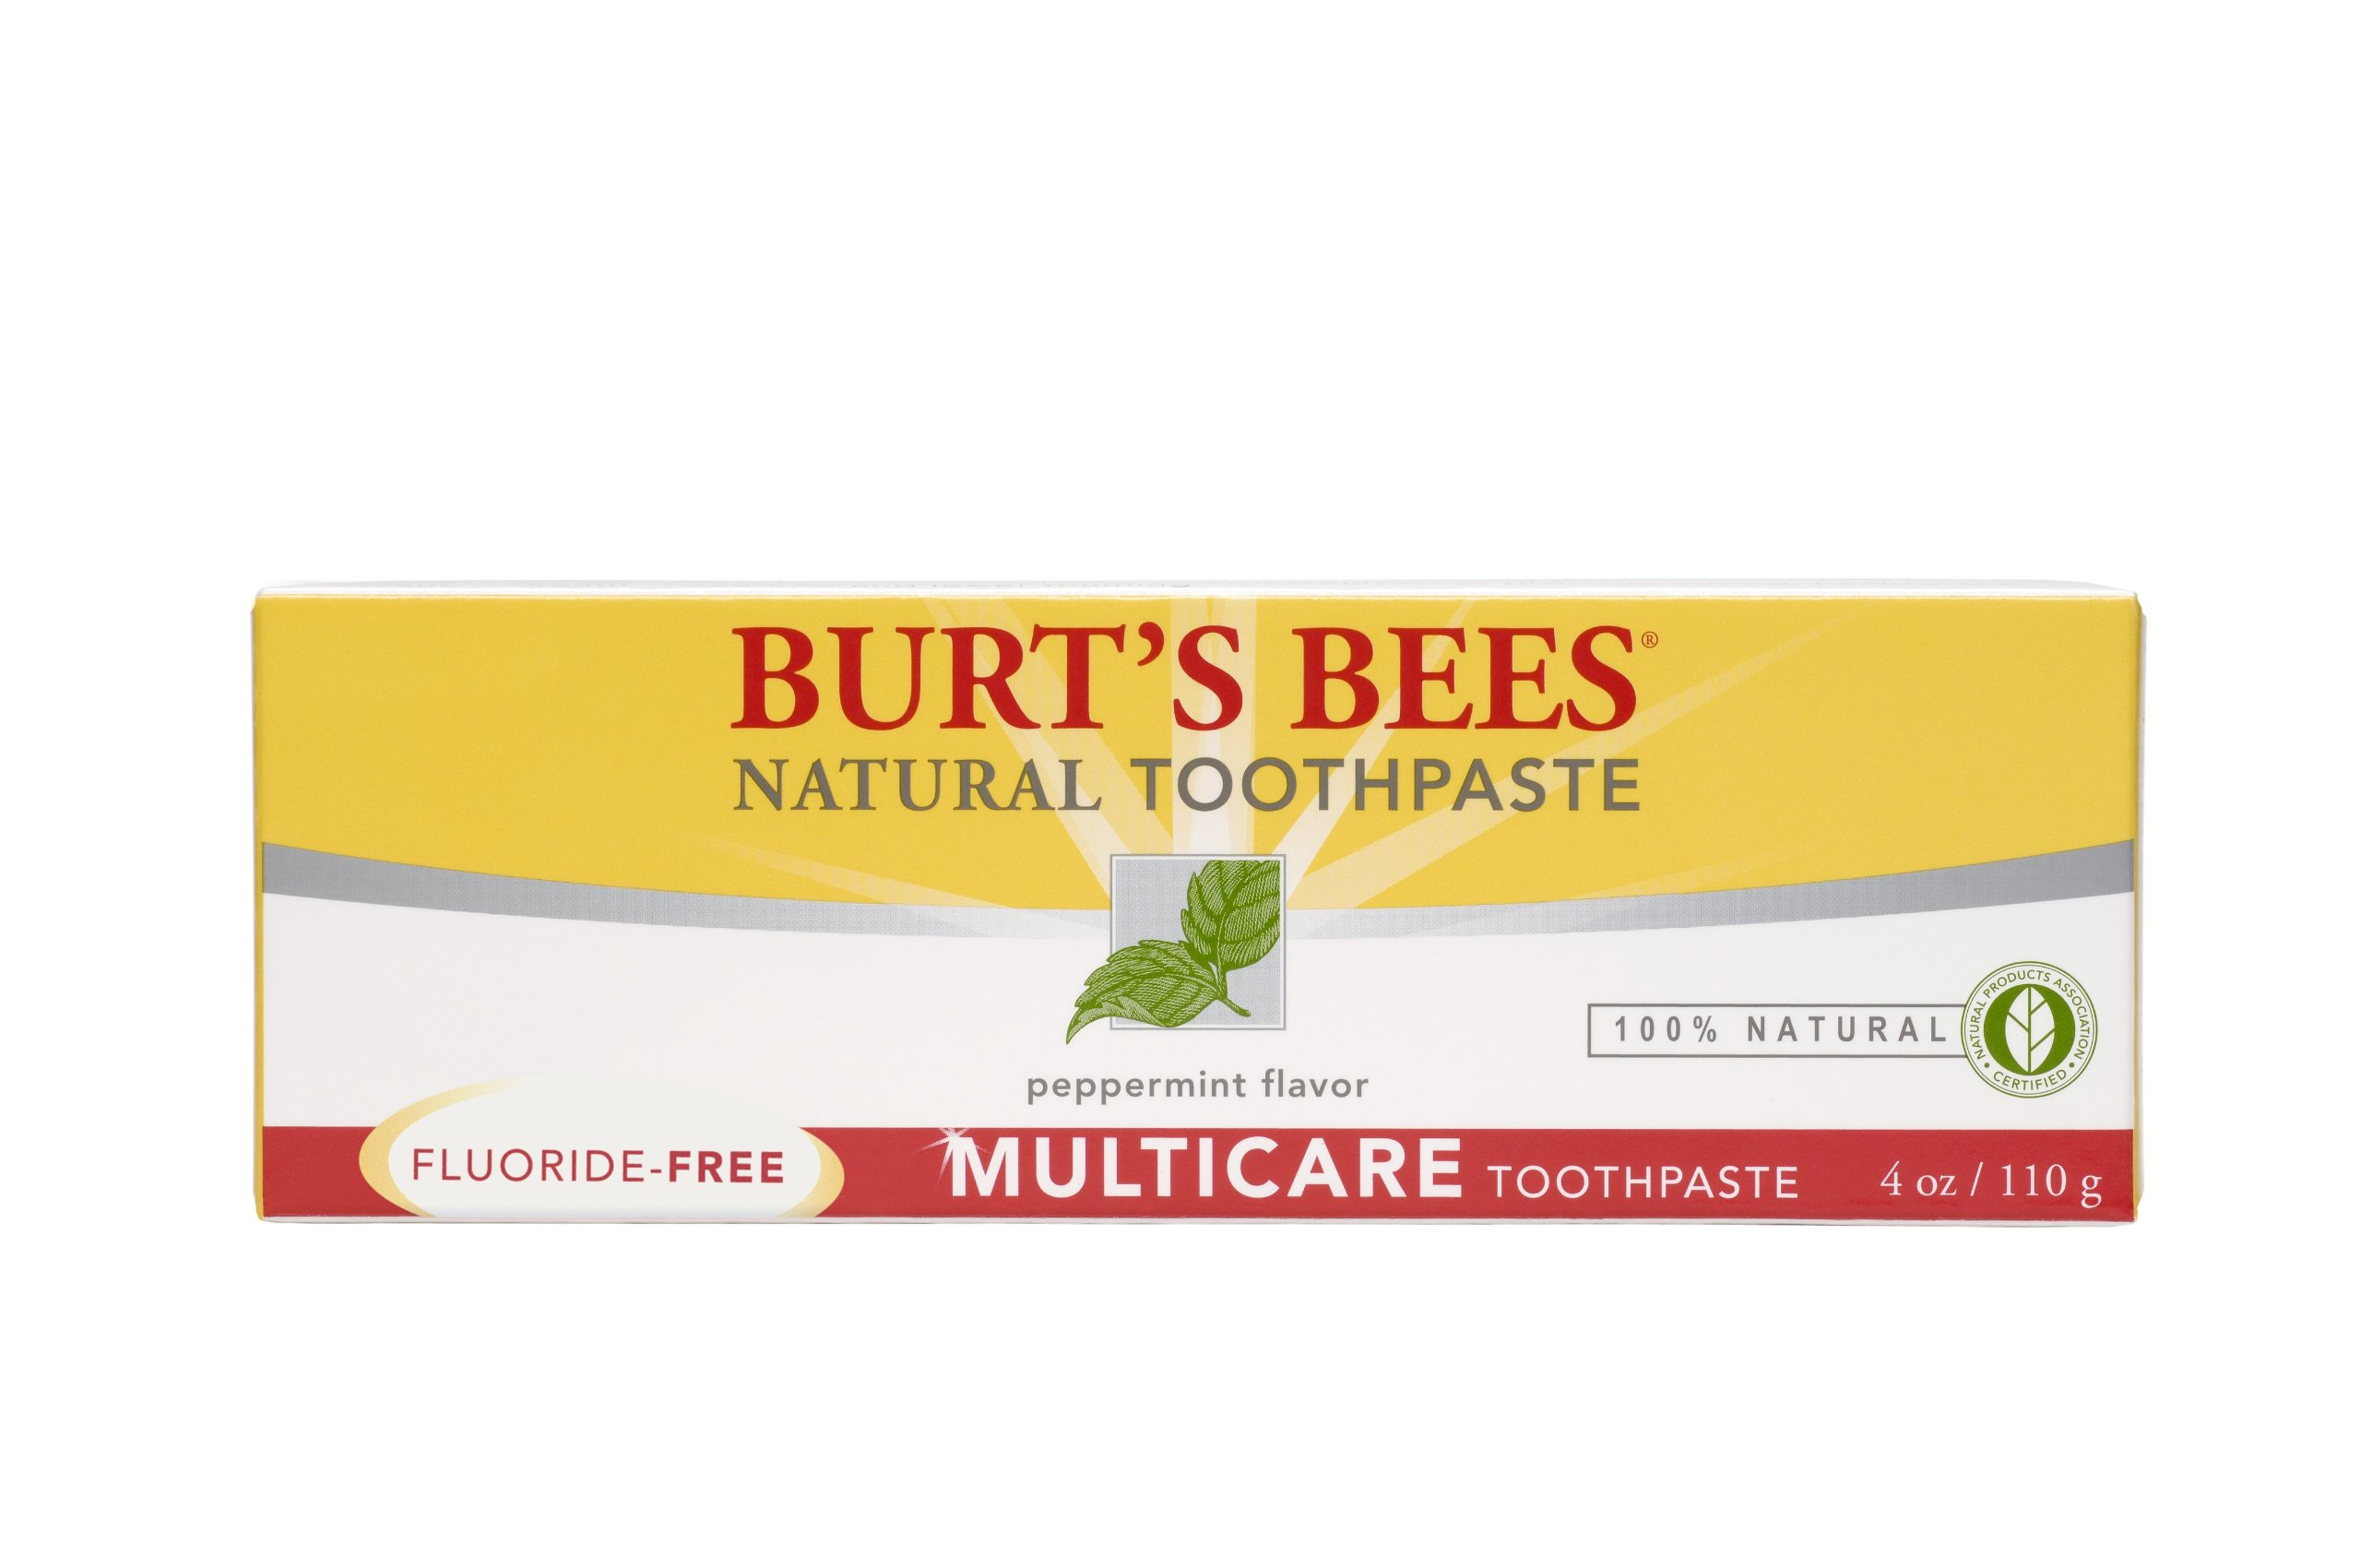 Burt's Bees Natural Toothpaste - Multicare without Fluoride, 4 Ounces (Pack of 4)